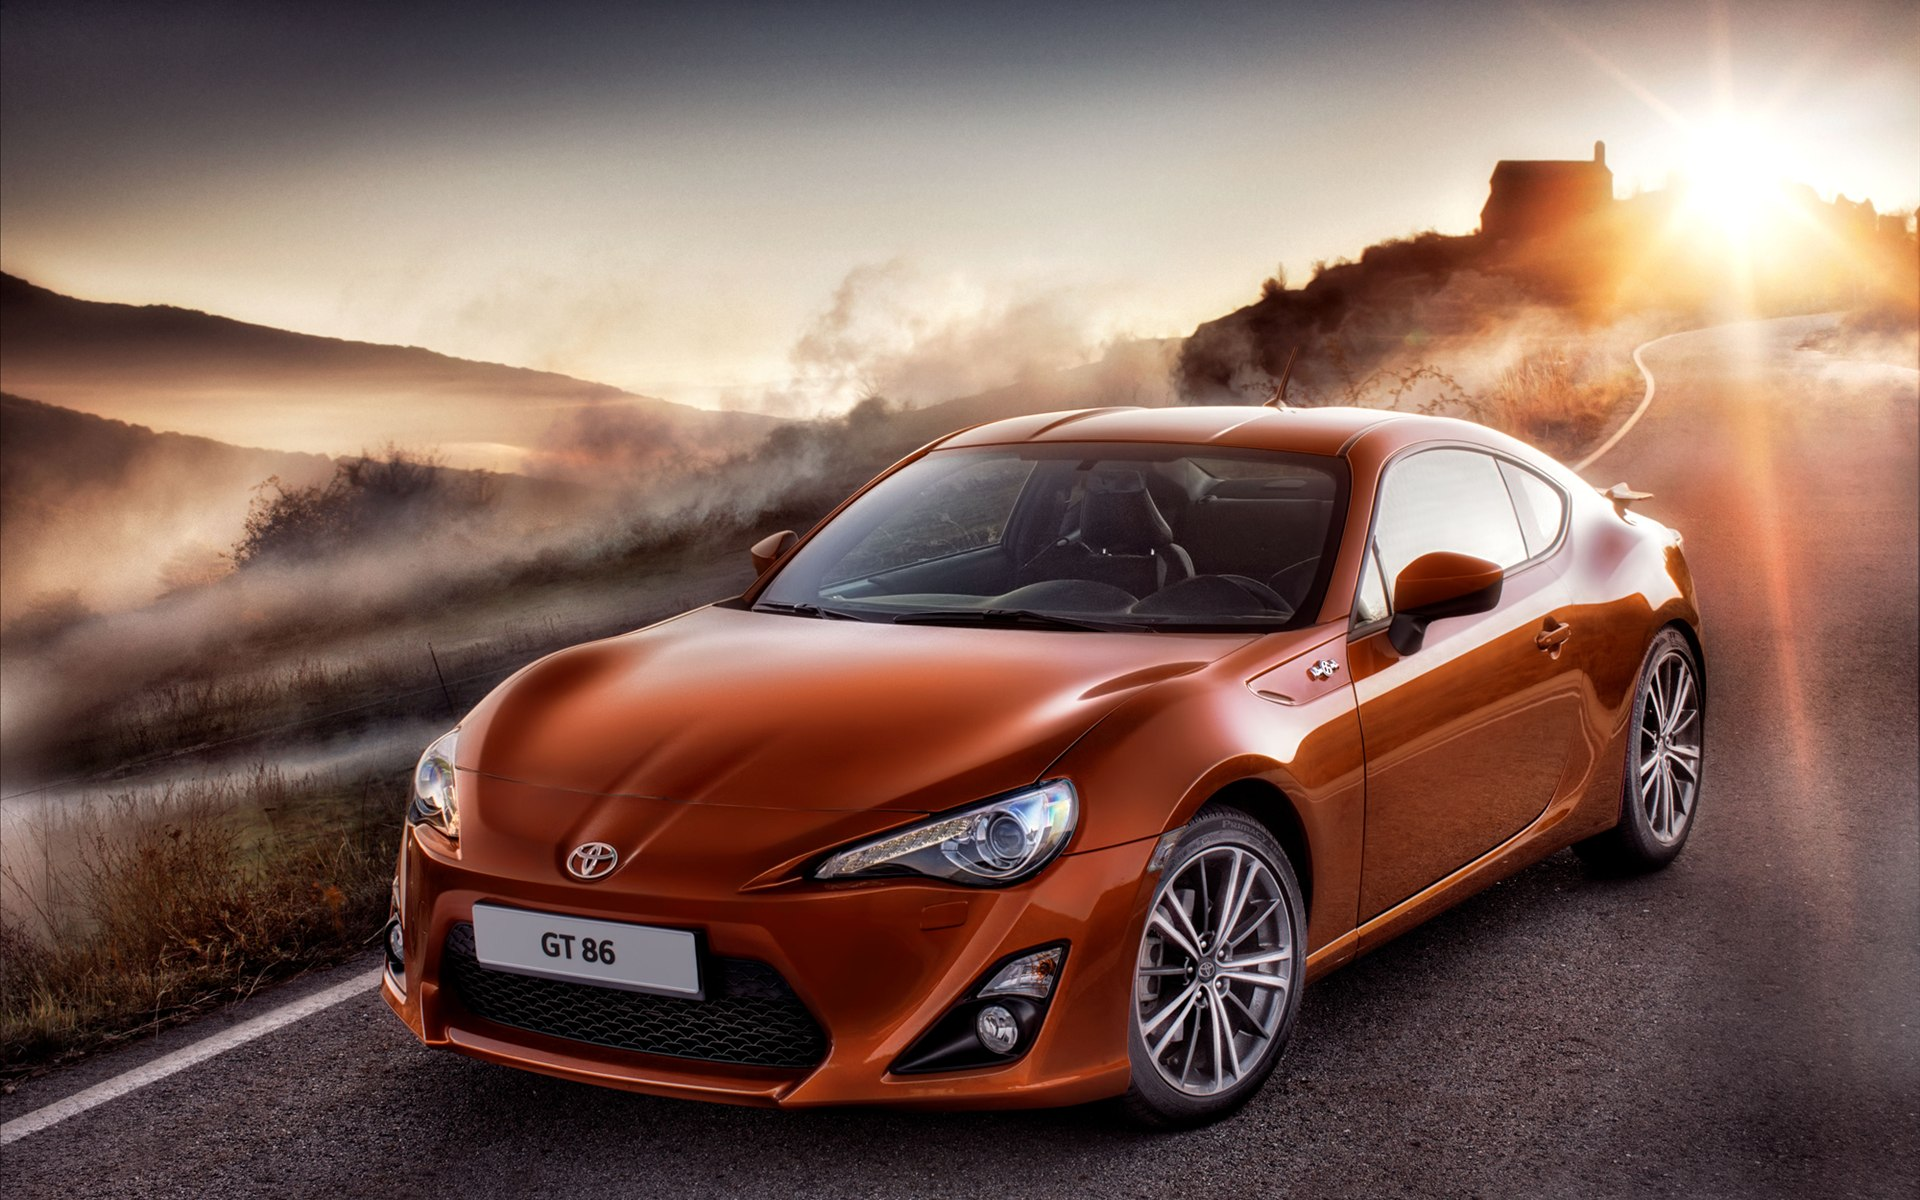 2012 toyota gt 86 3 wallpaper hd car wallpapers id 2336. Black Bedroom Furniture Sets. Home Design Ideas